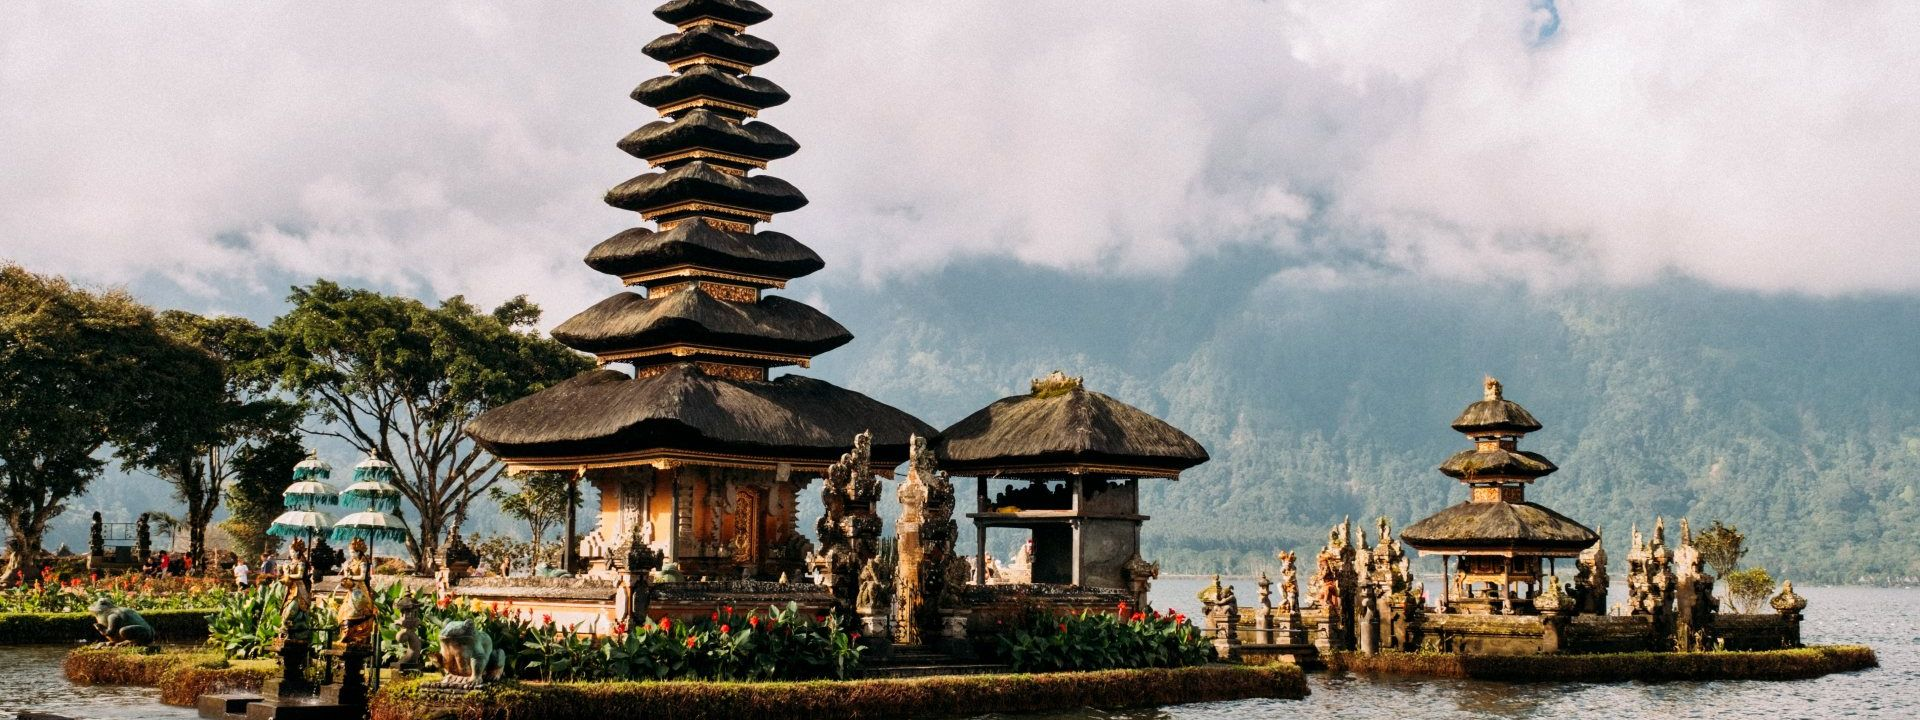 Bedugul Bali Holiday Land Tour